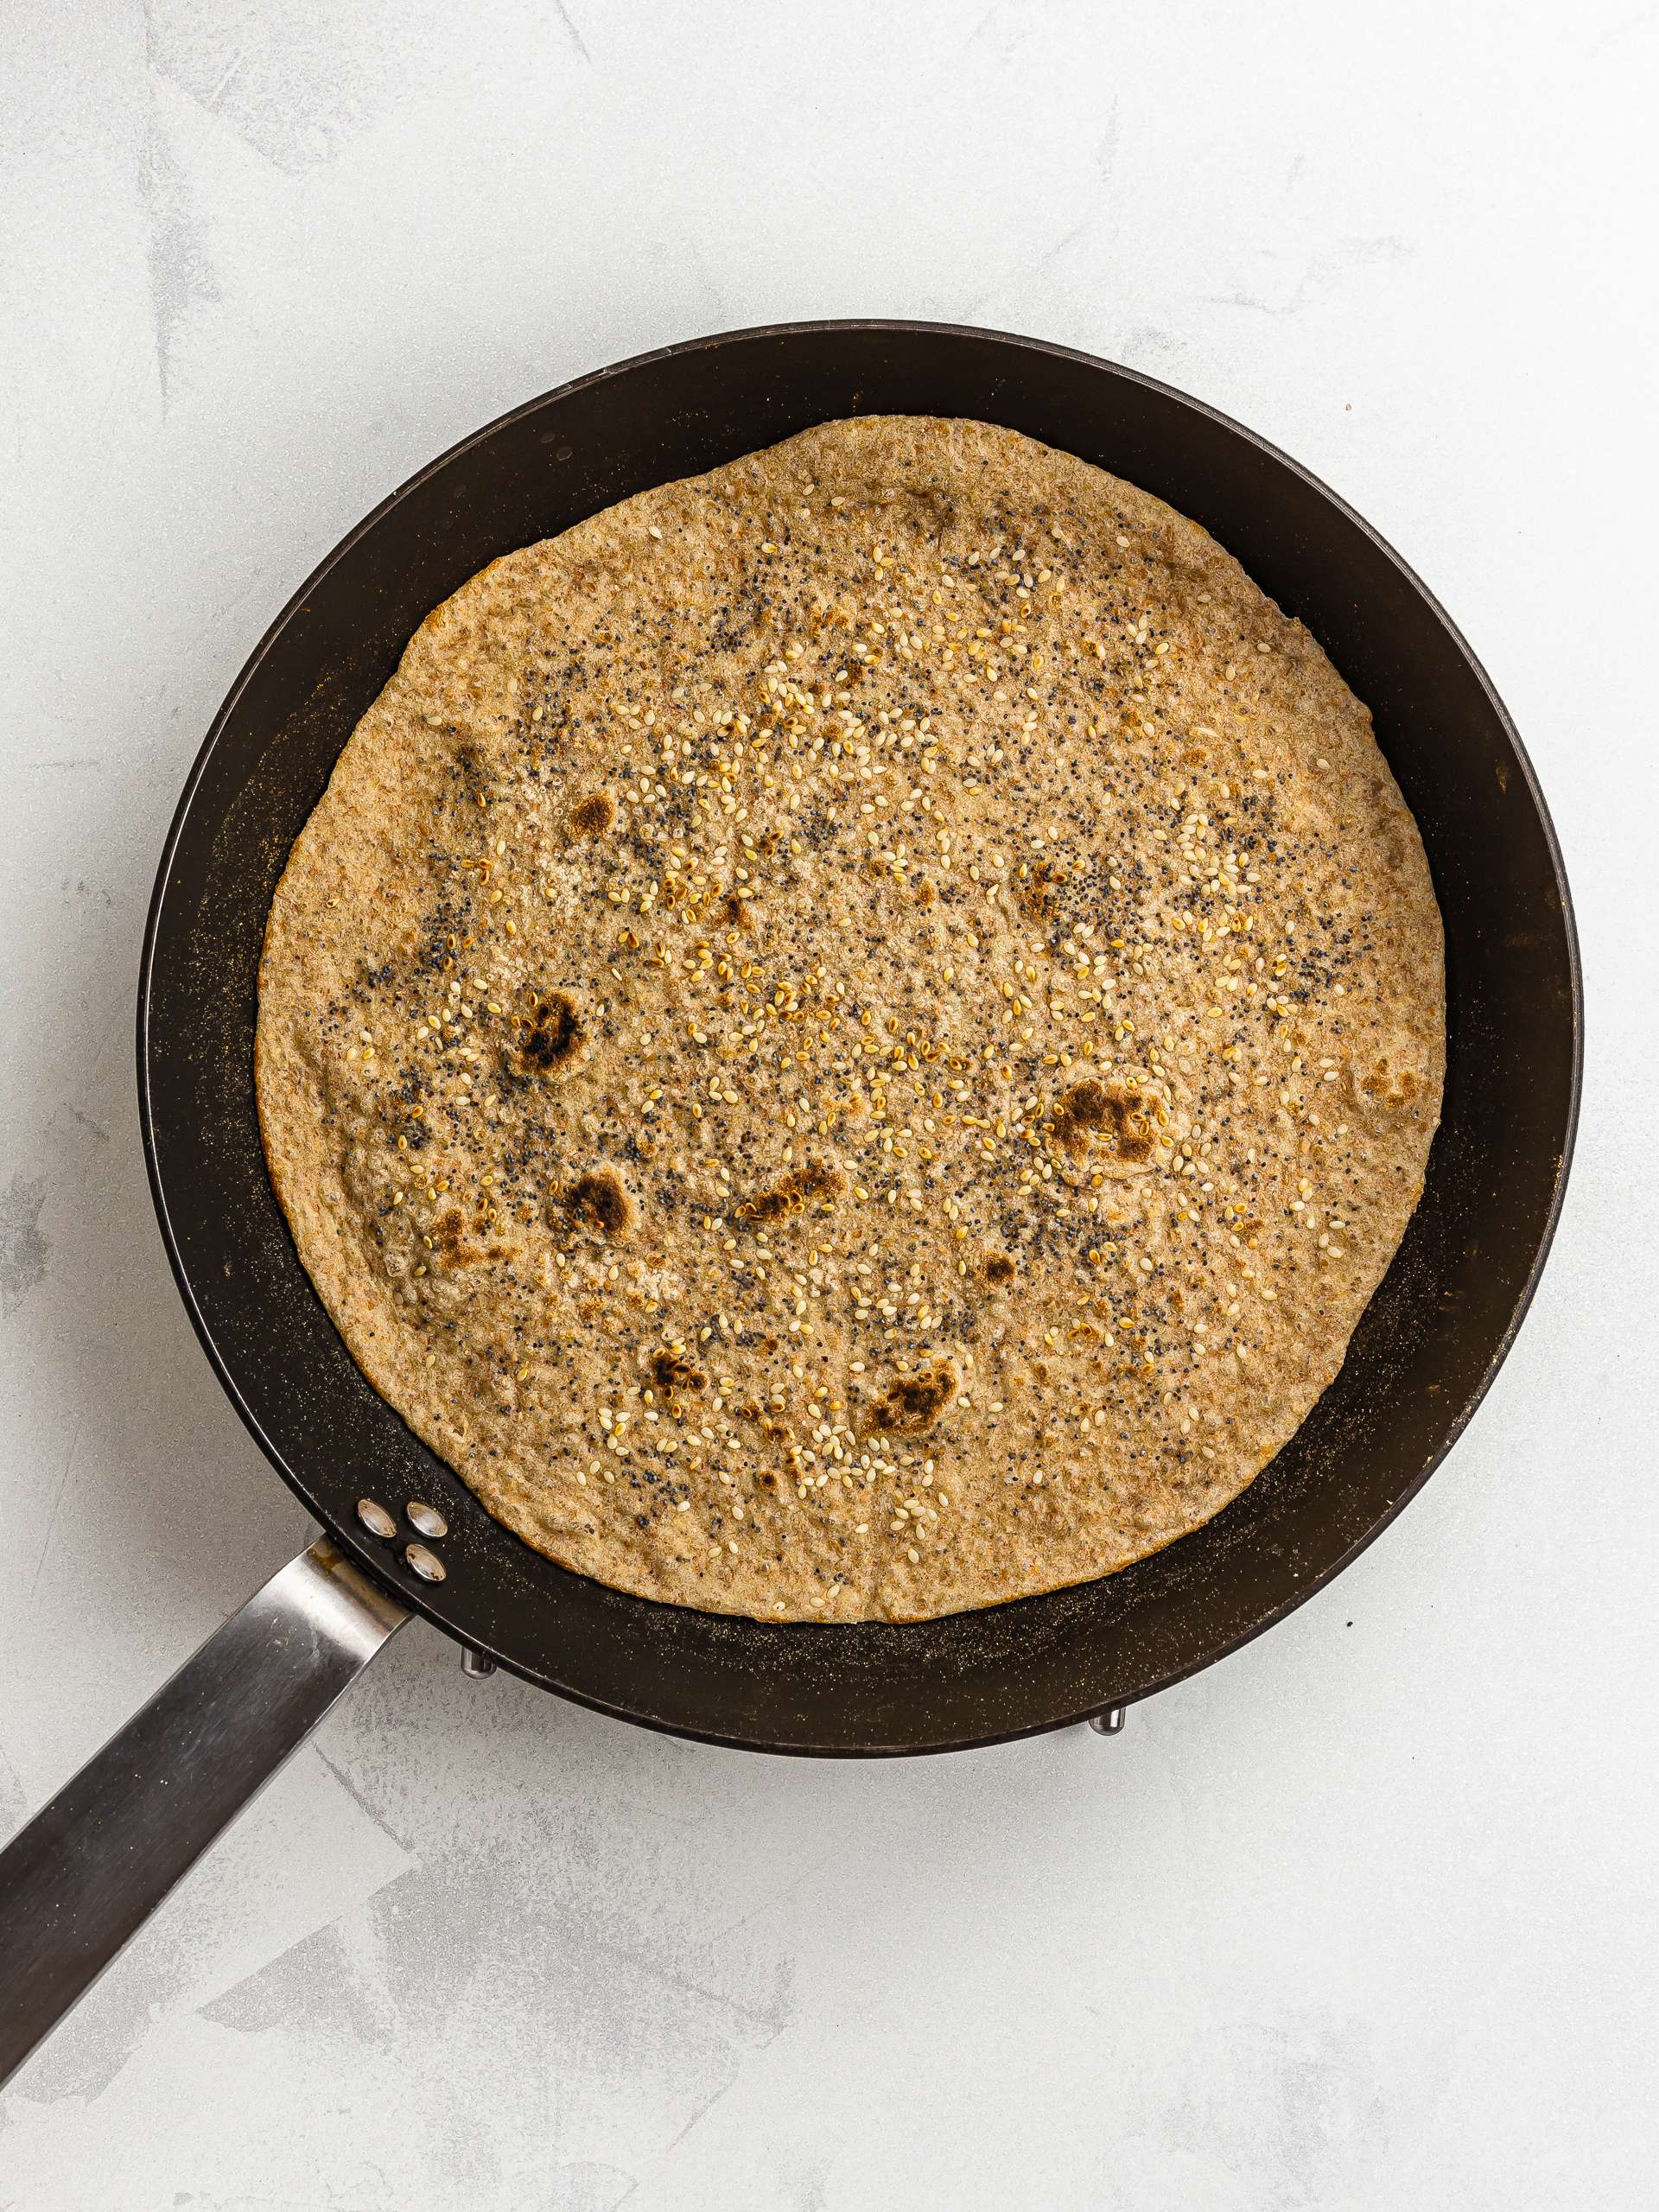 lavash bread wrap cooked in a skillet